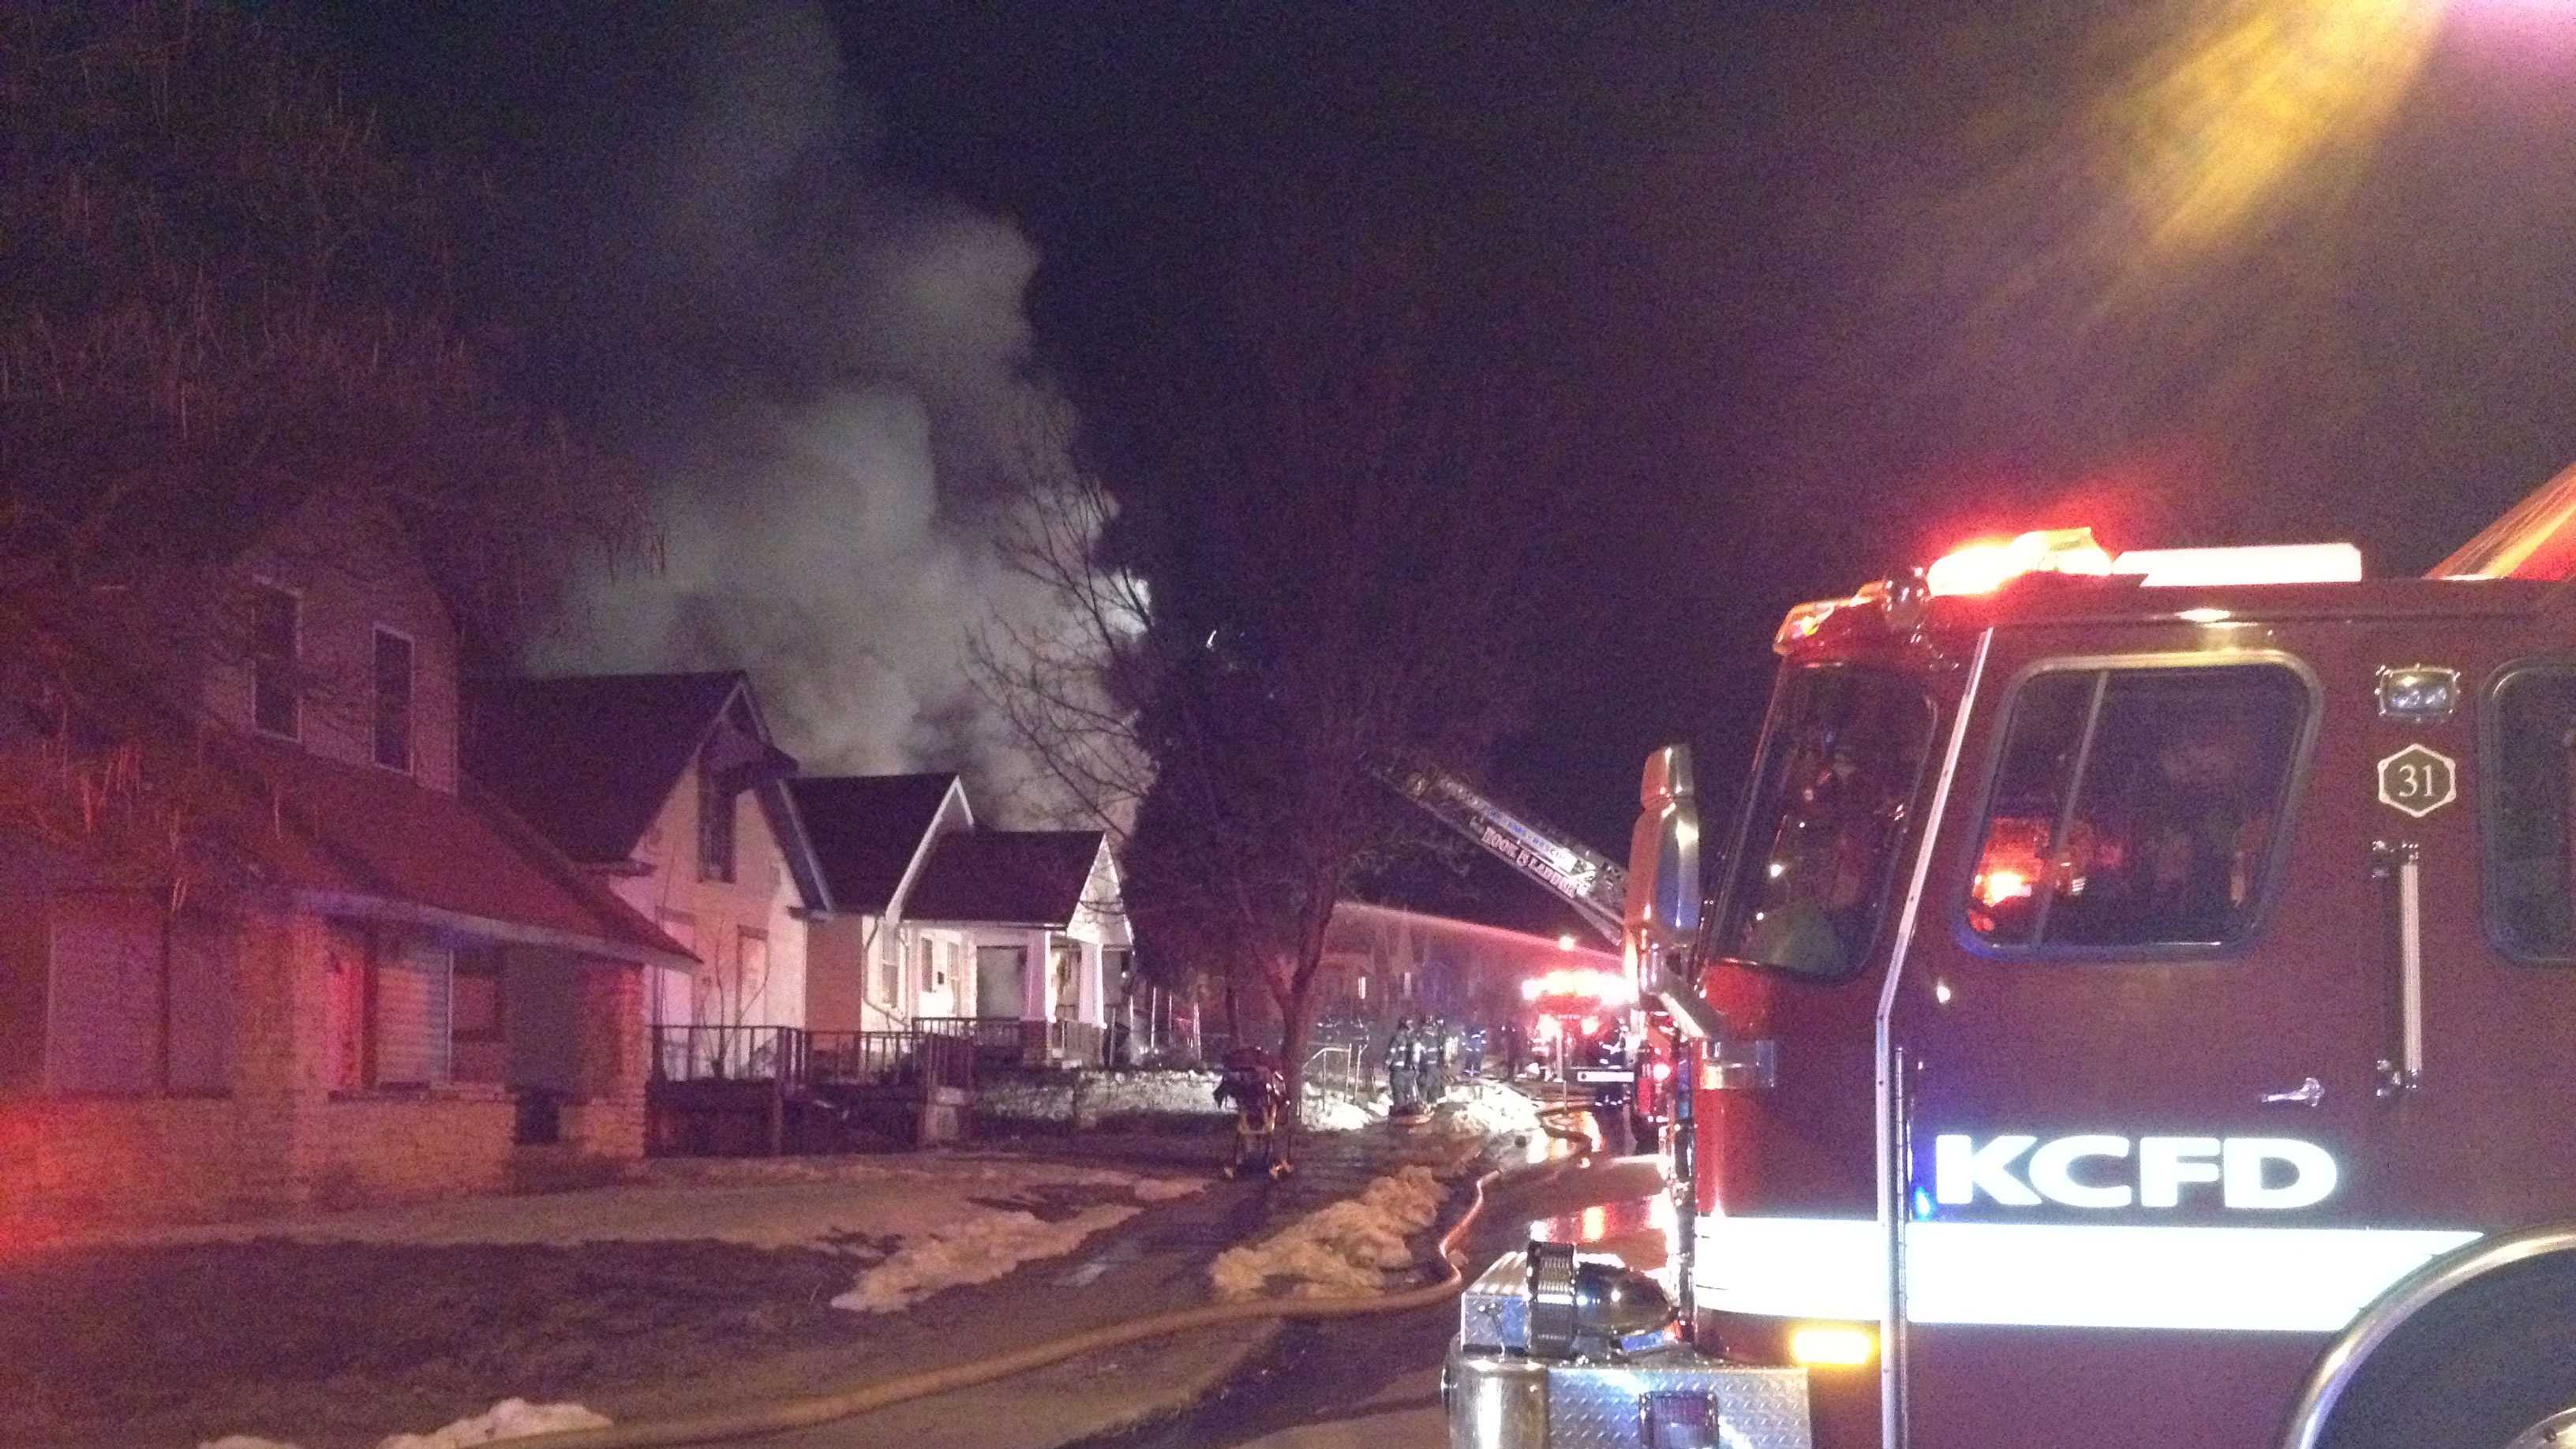 House fire, 45th, Chestnut